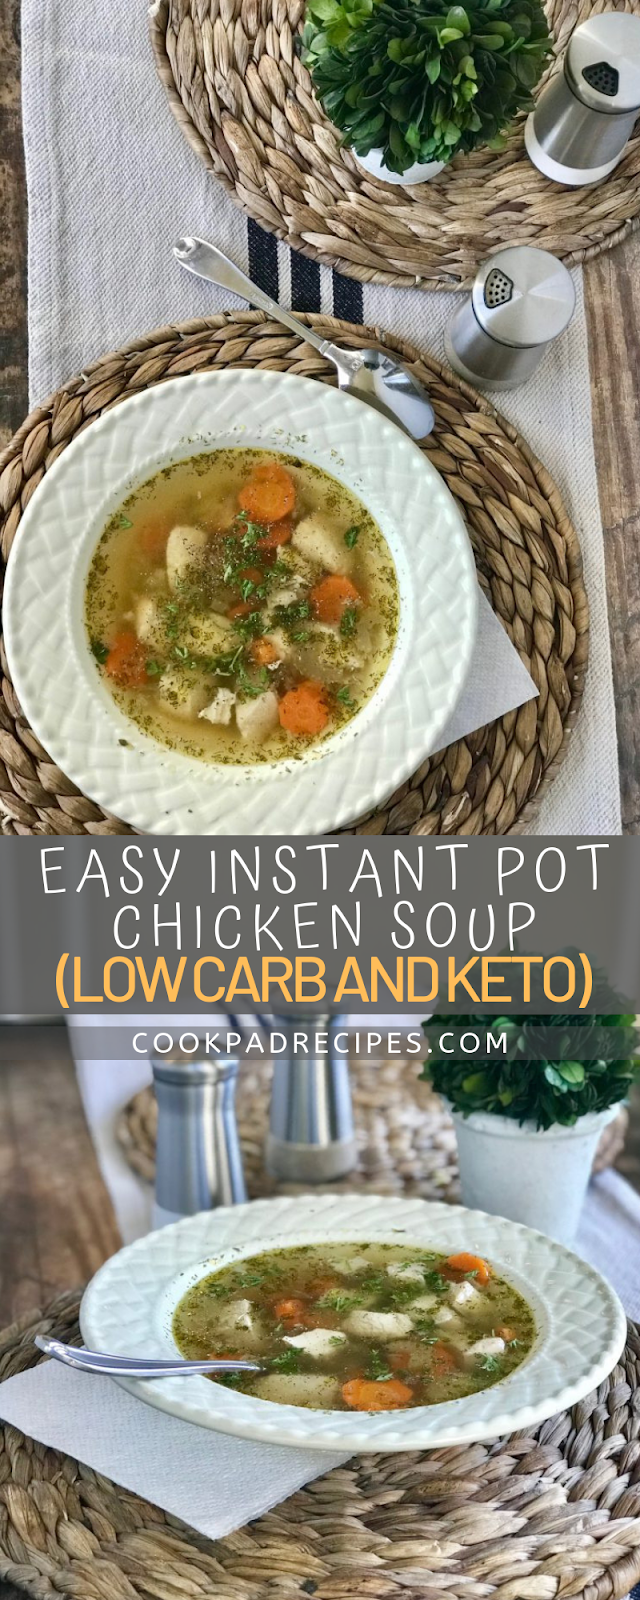 EASY INSTANT POT CHICKEN SOUP (LOW CARB AND KETO)